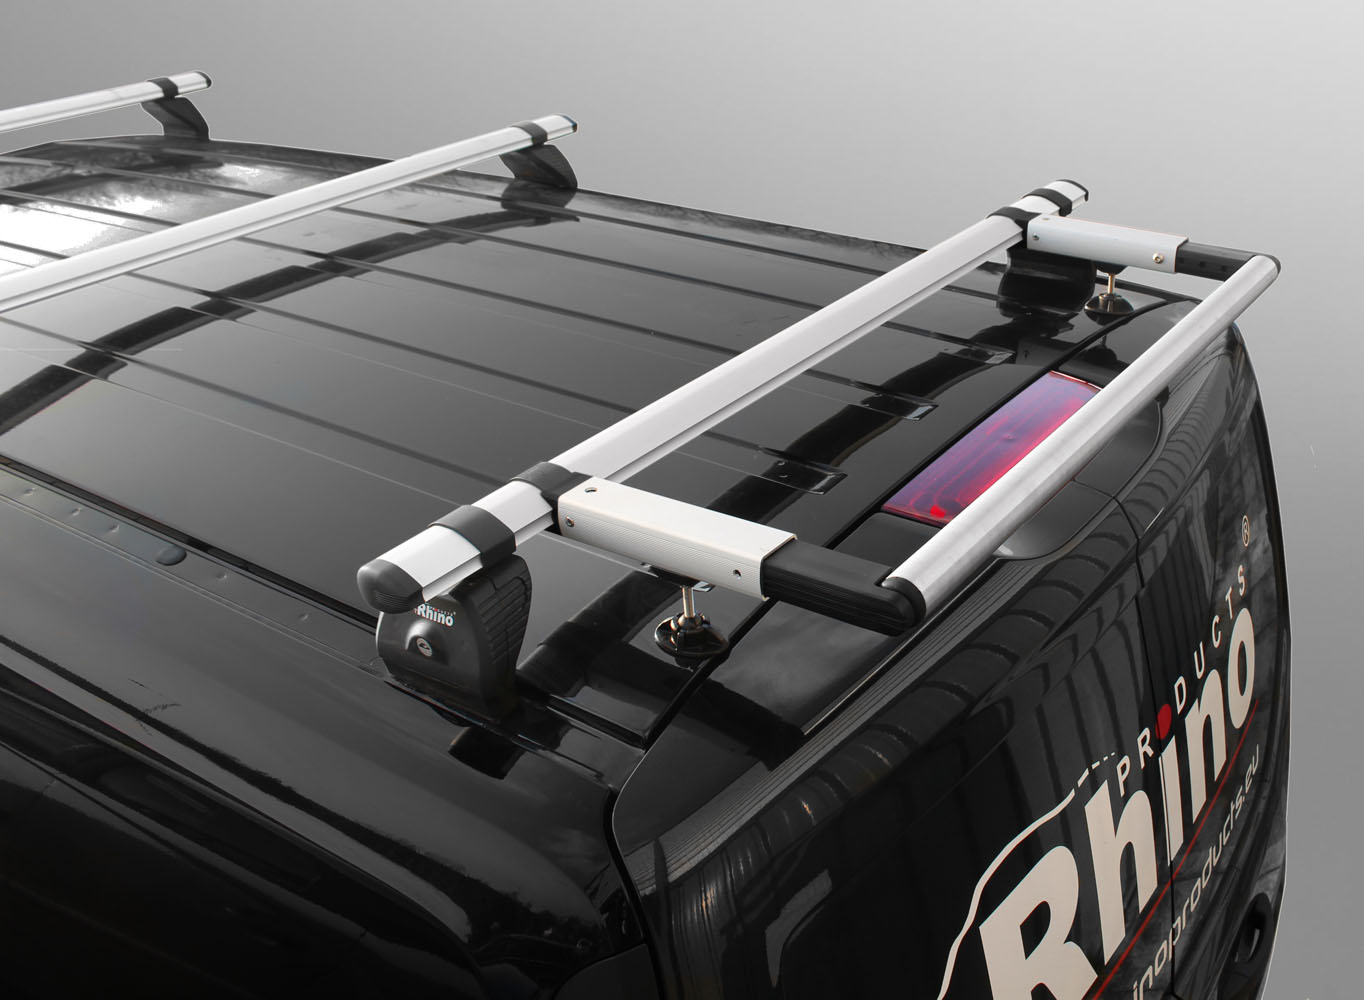 2012 on Rhino Delta 2 Bar Roof Bars and Rear Steel Ladder Roller System for Vauxhall Combo